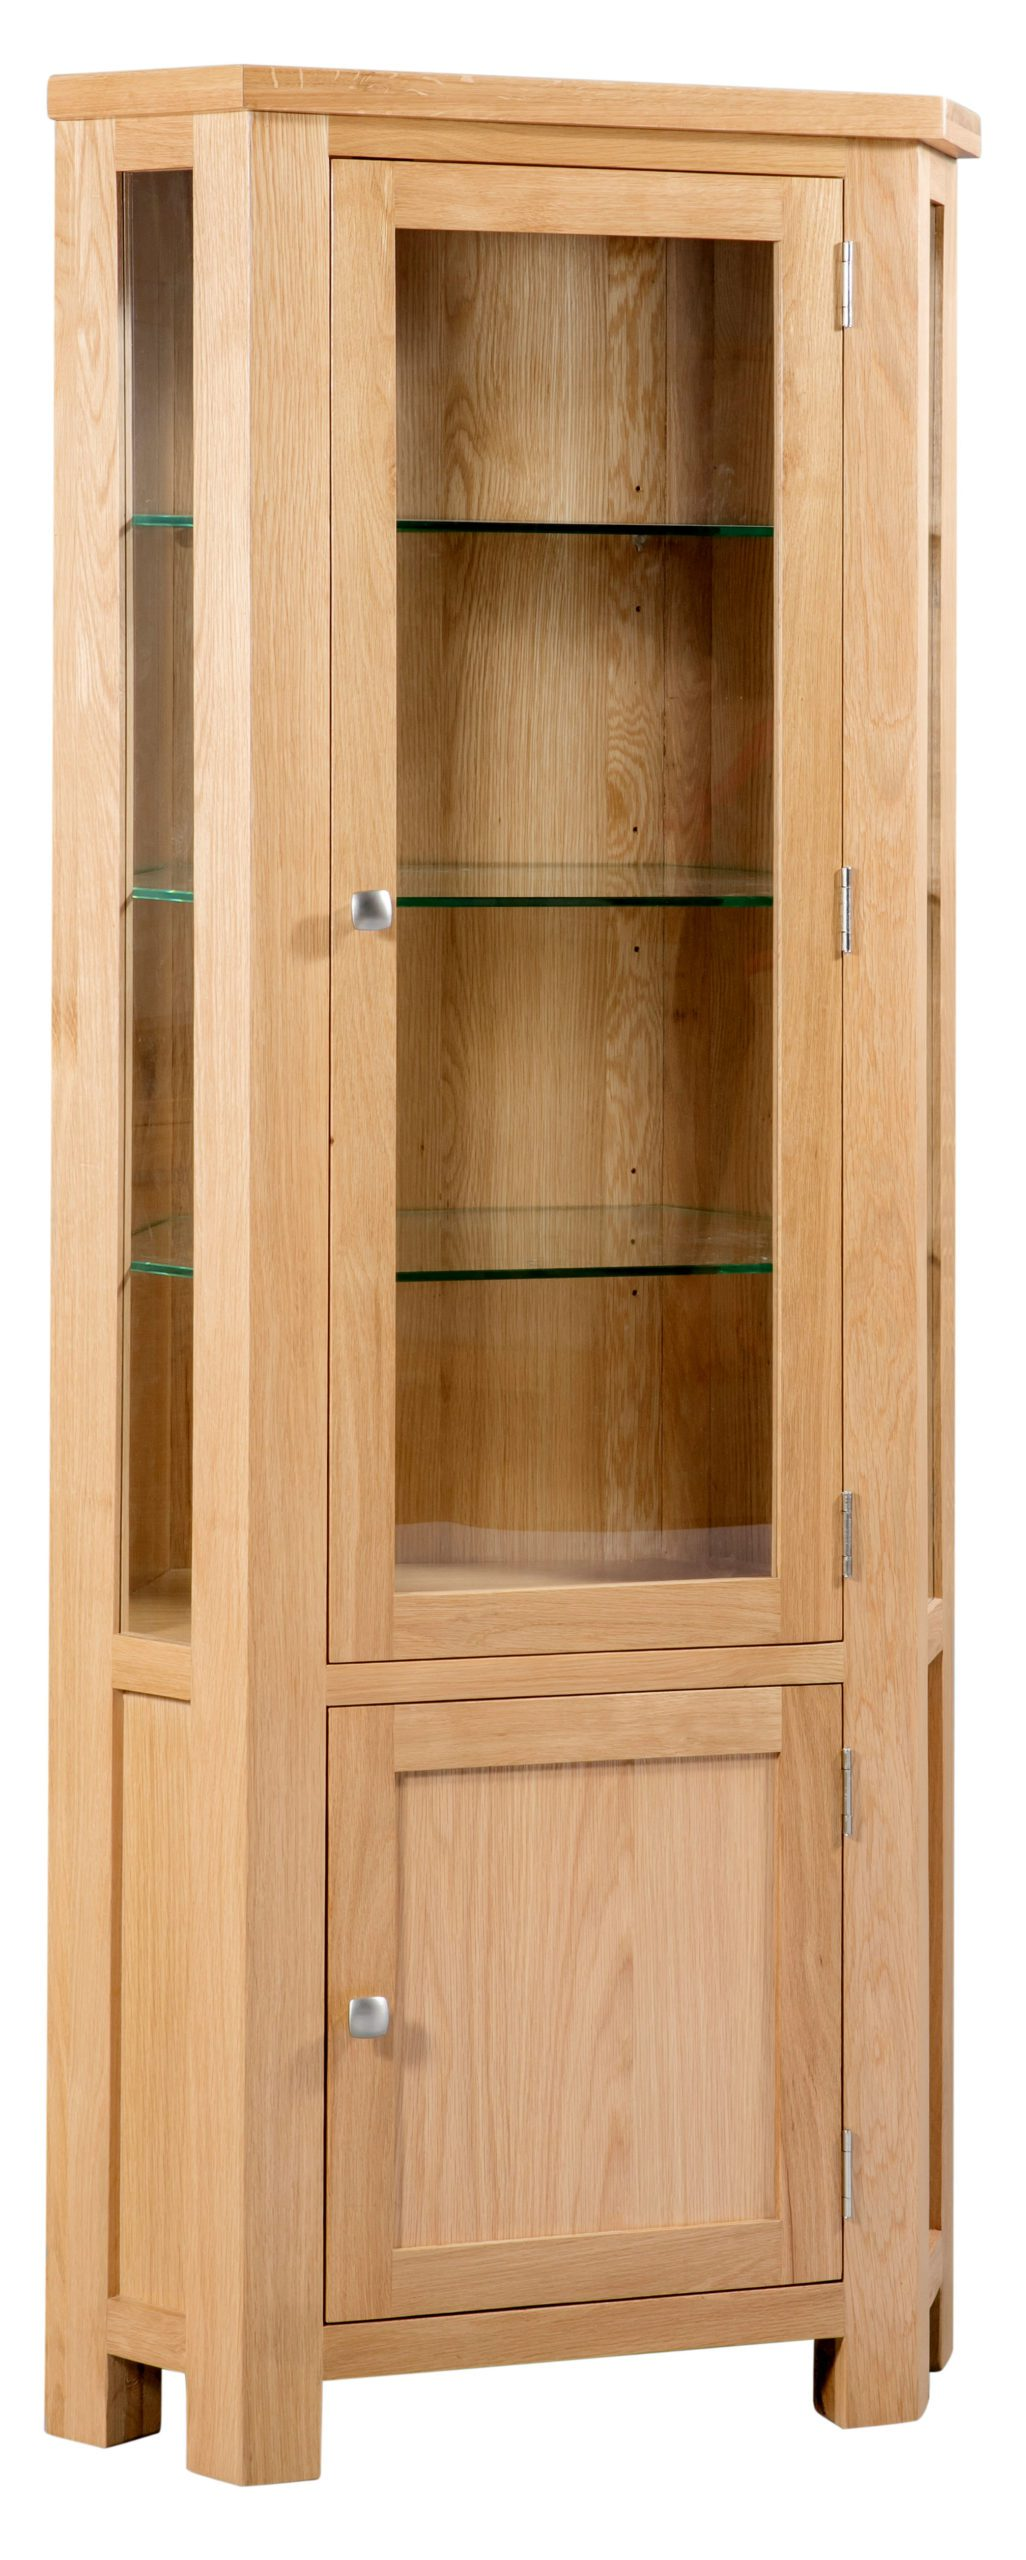 Dorset oak corner display unit with glass sides and doors